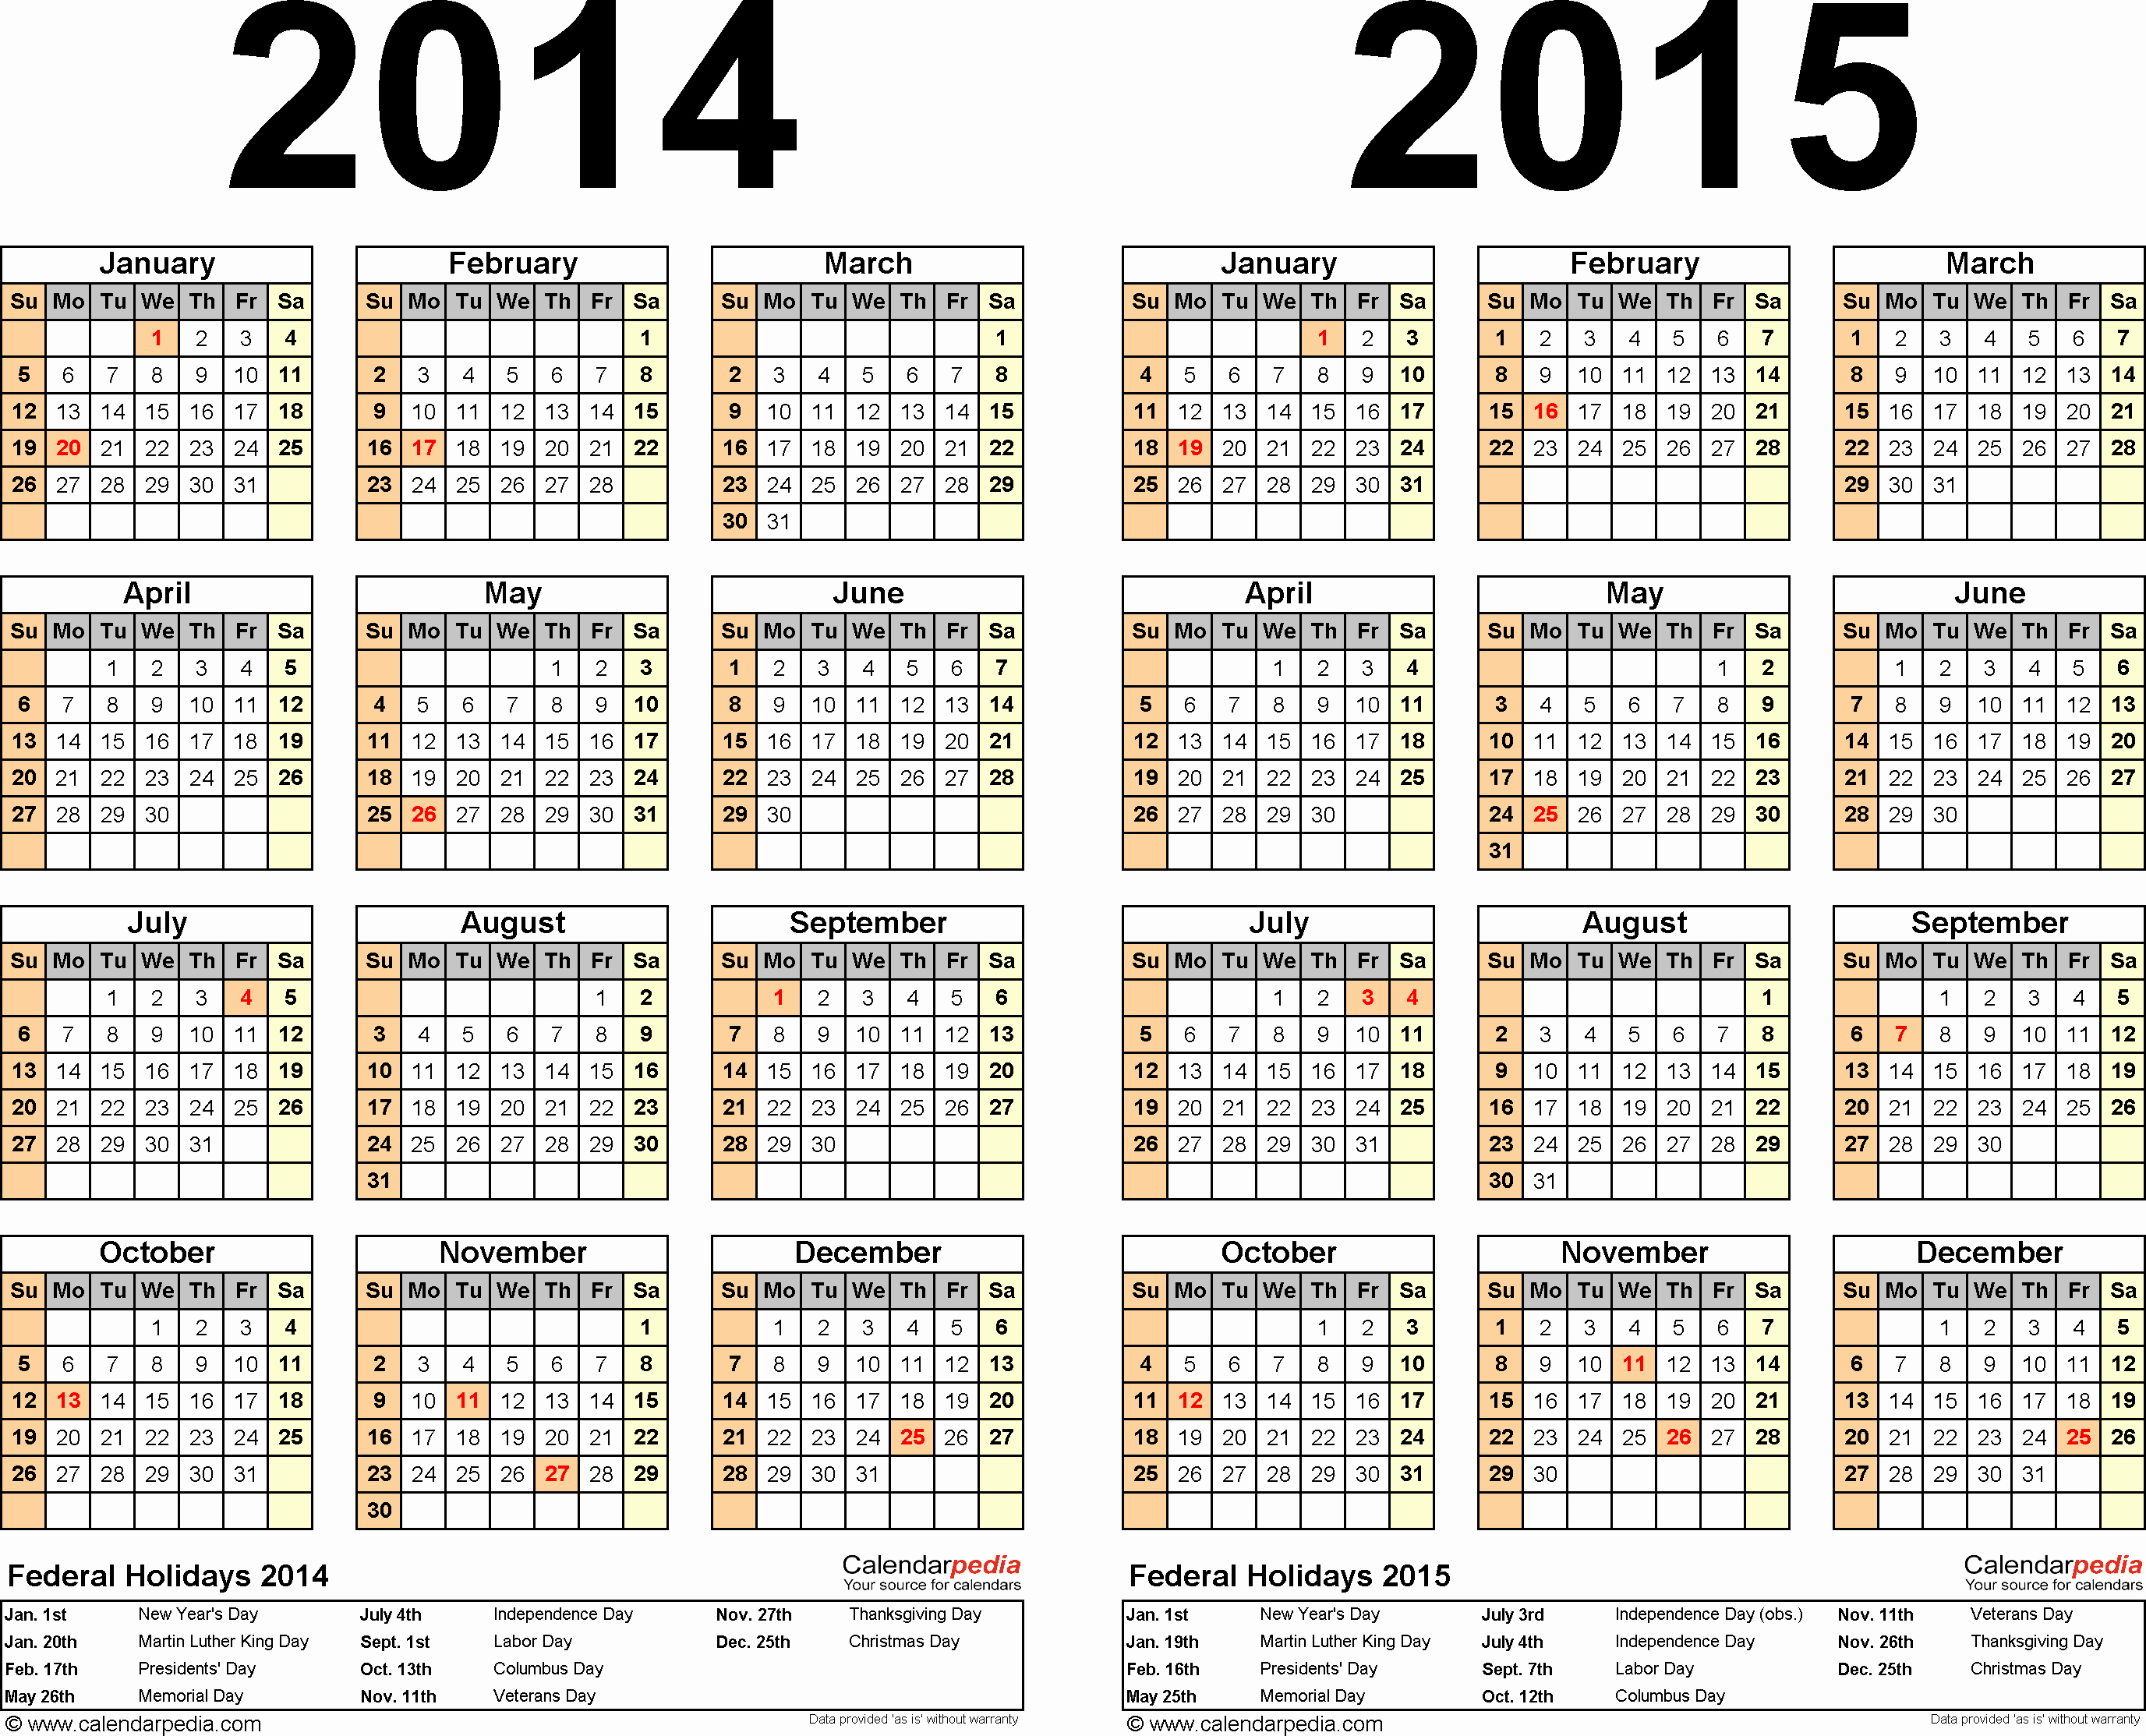 2015 Calendar with Holidays Excel New 2014 2015 Calendar Free Printable Two Year Excel Calendars